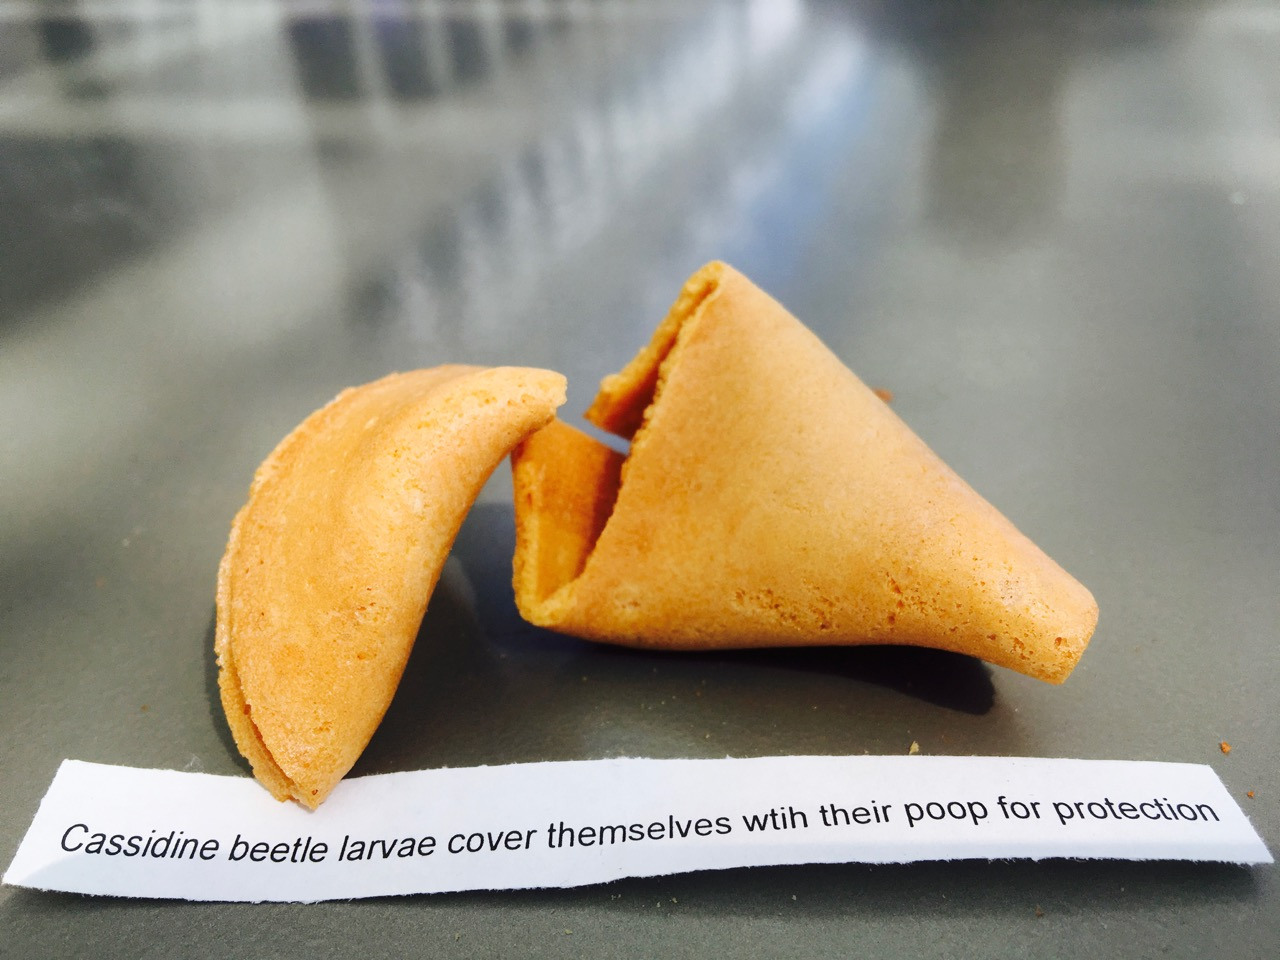 Science fortune cookie